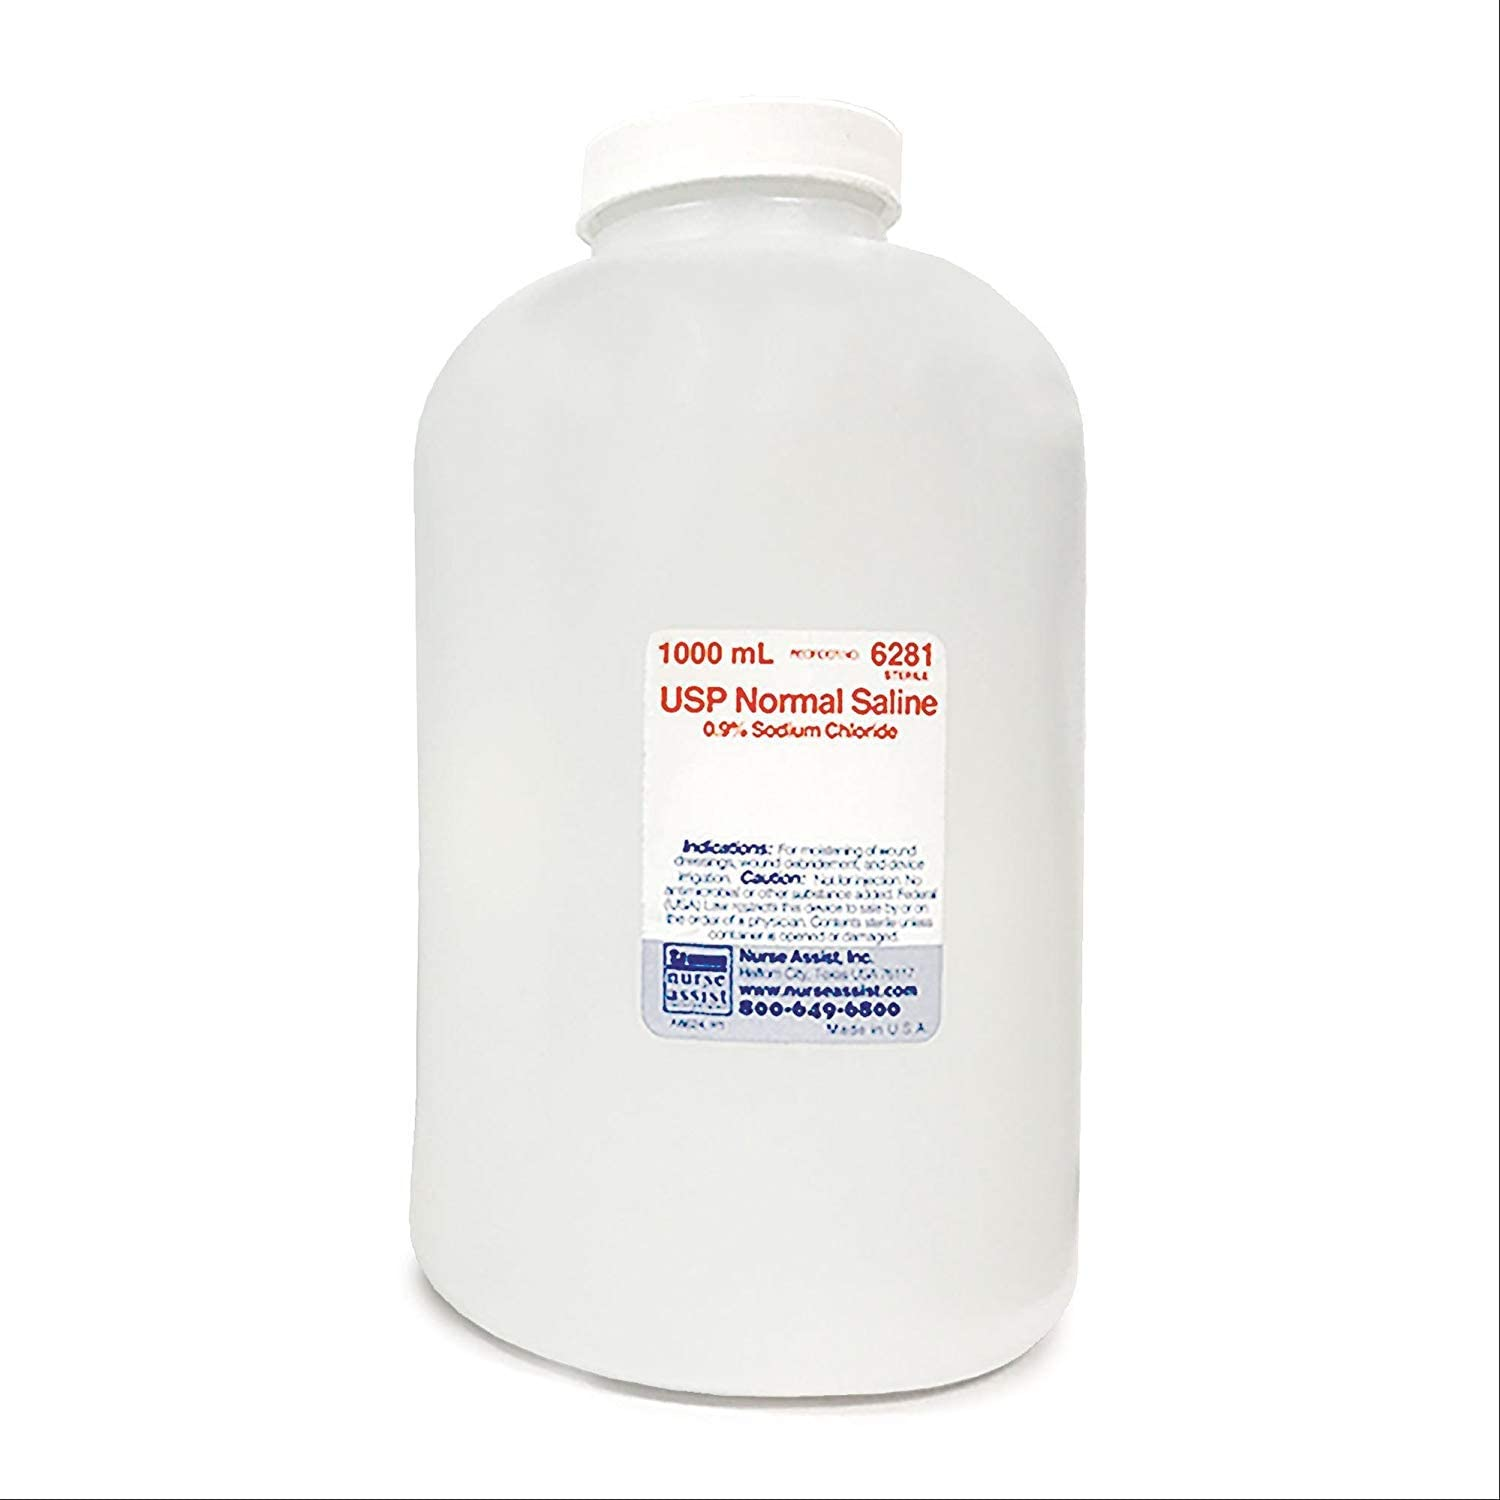 Sterile 0.9% Saline Solution - 1000mL